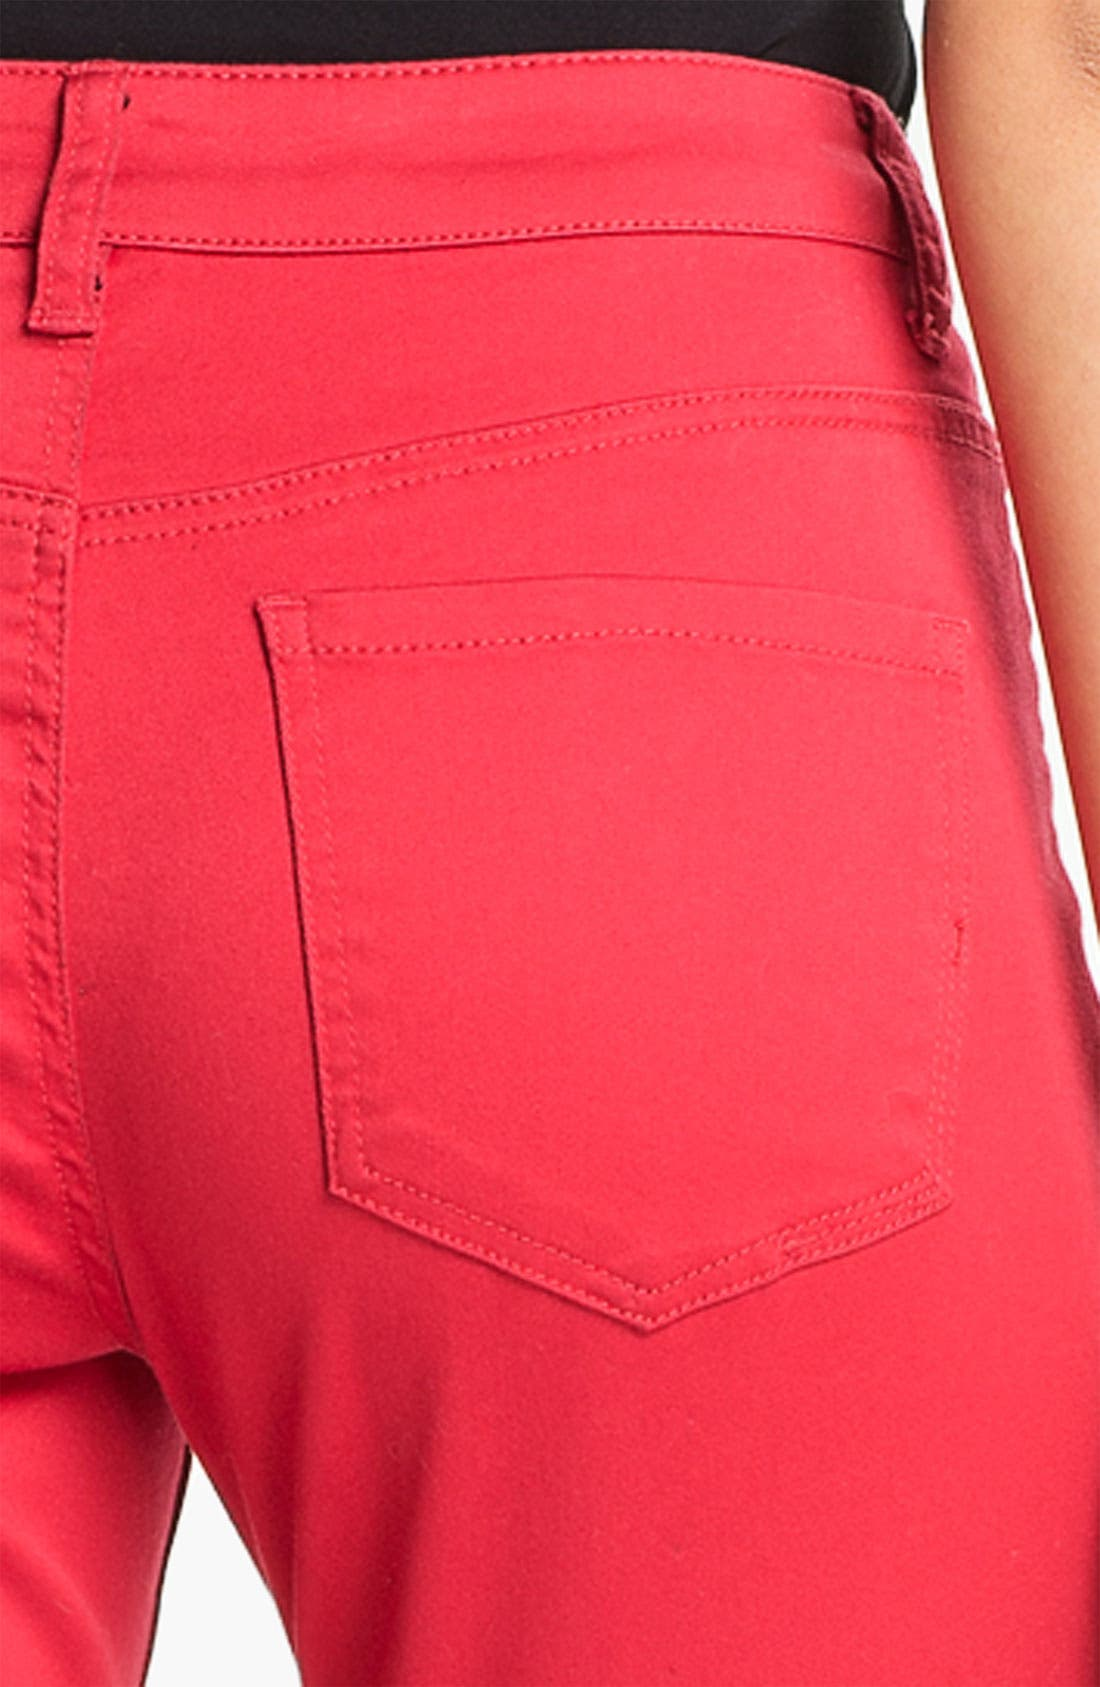 Alternate Image 3  - Liverpool Jeans Company 'Sadie' Colored Straight Leg Stretch Jeans